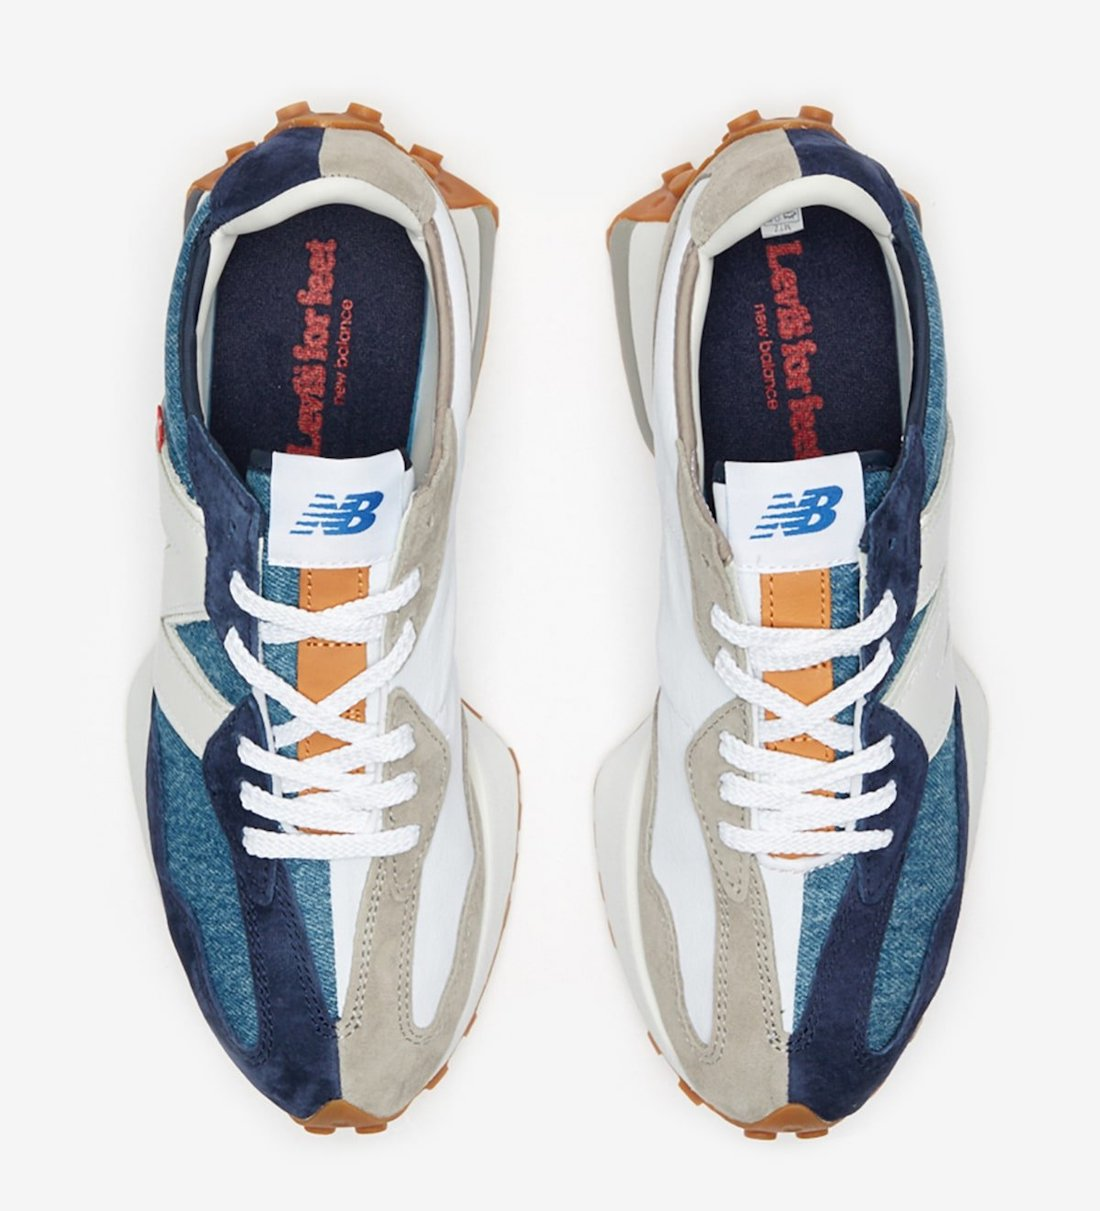 Levis New Balance 327 Release Date